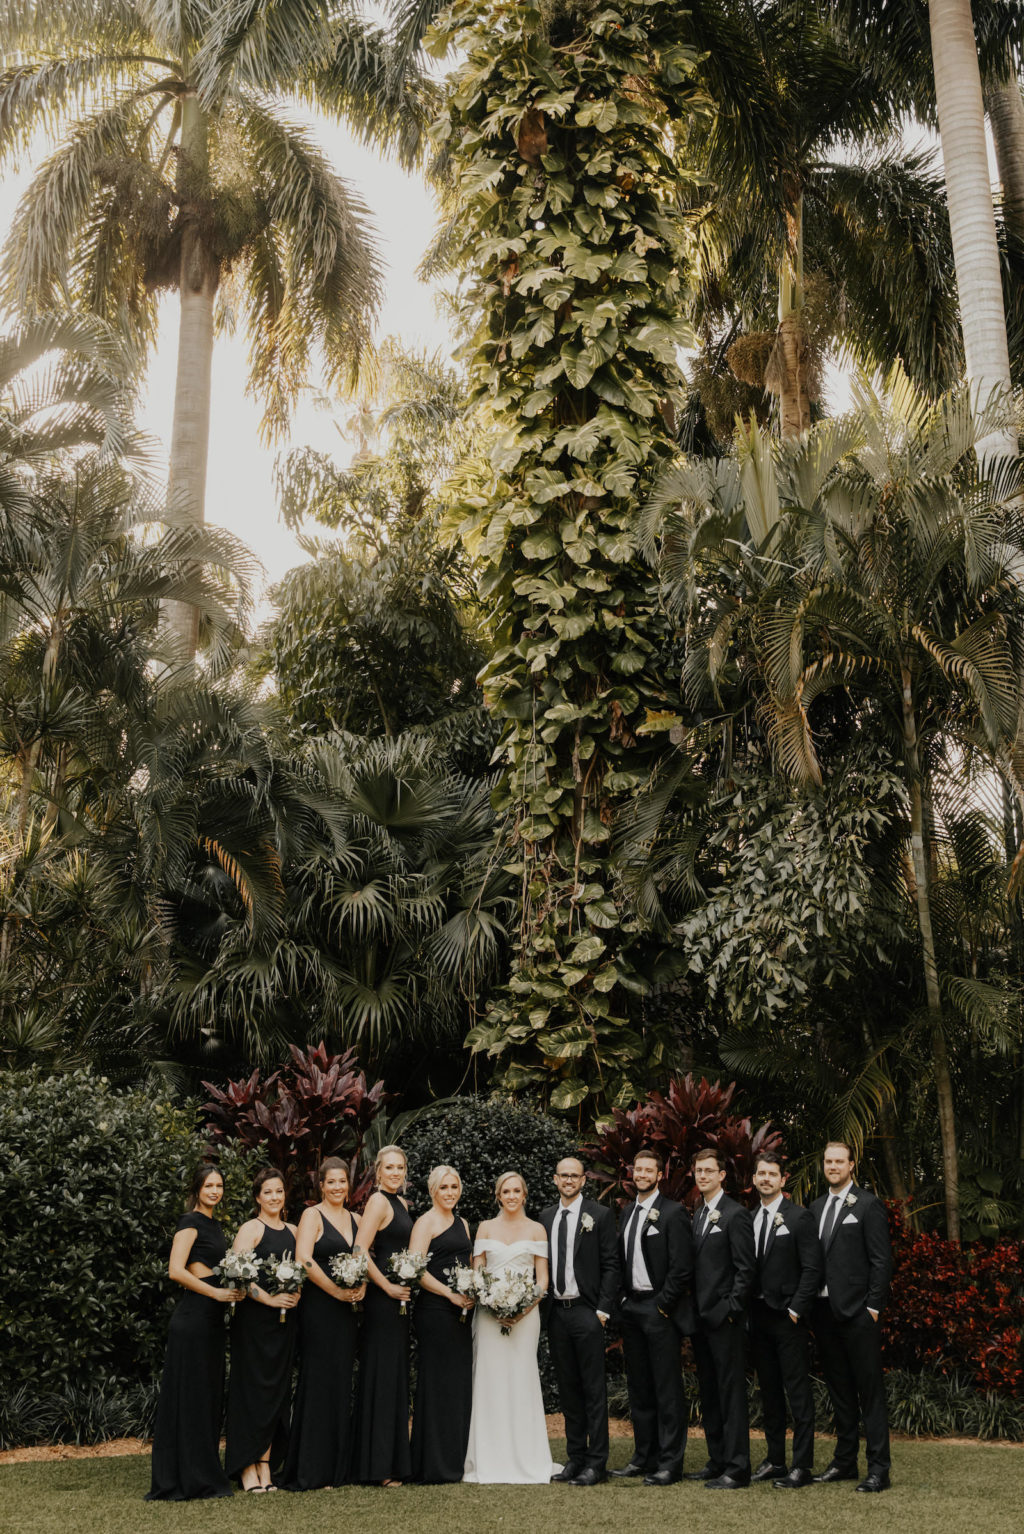 Classic Florida Wedding Party at Sunken Gardens in Downtown St. Petersburg, Brides Wearing Mix and Match Long Black BHLDN Bridesmaid Dresses, Groomsmen in Classic Black Suit and Tie   Tampa Bay Wedding Hair and Makeup Artist Femme Akoi Beauty Studios